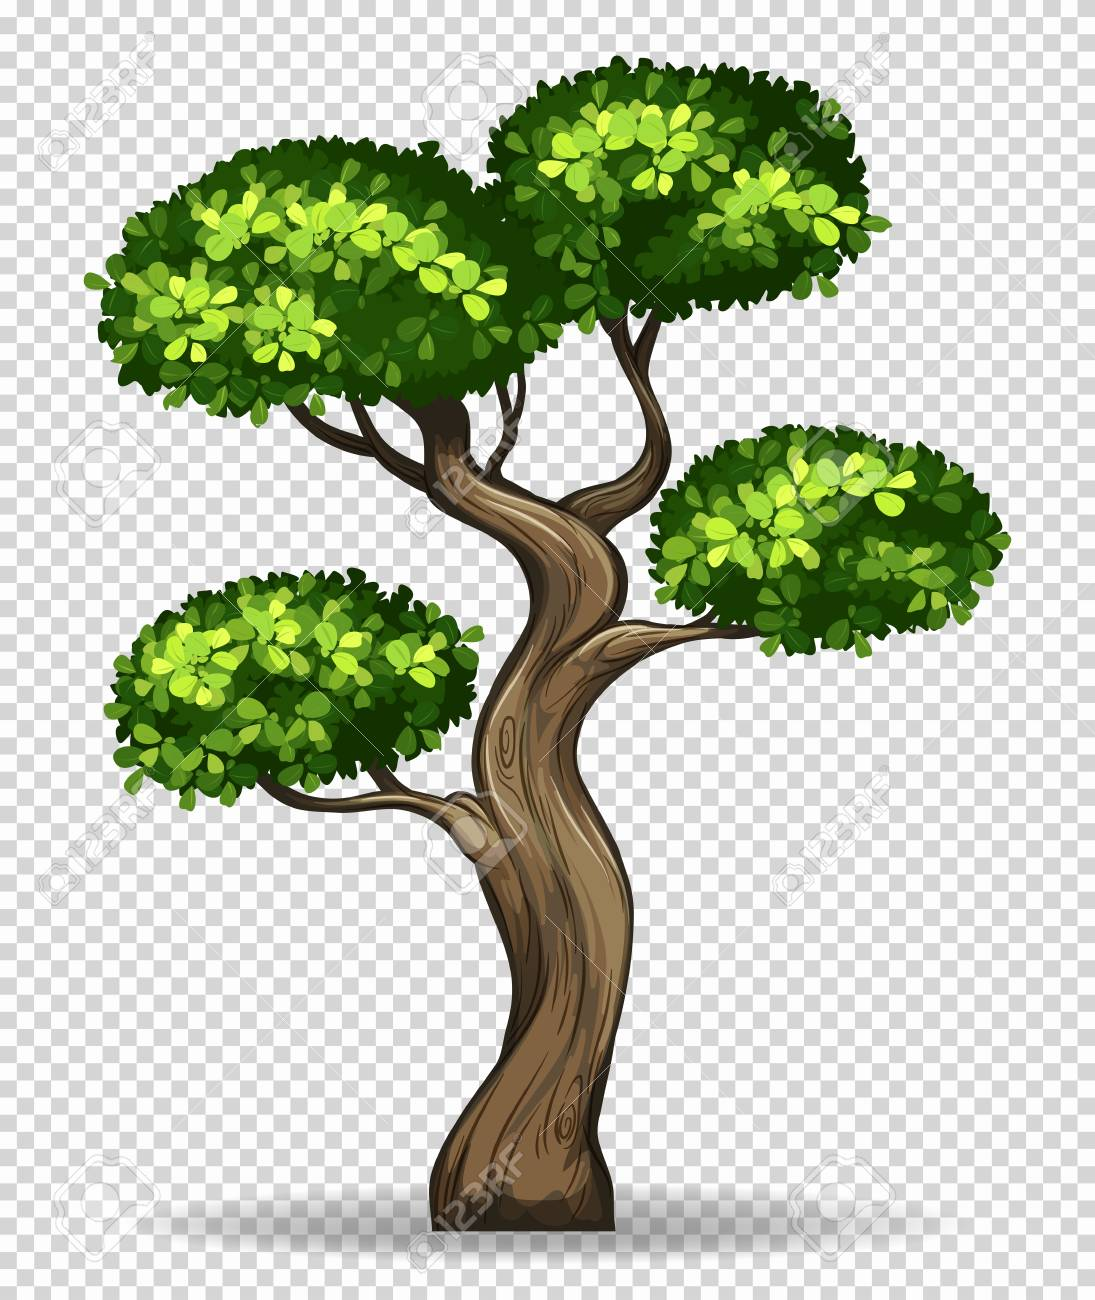 Bonsai tree on transparent background illustration.